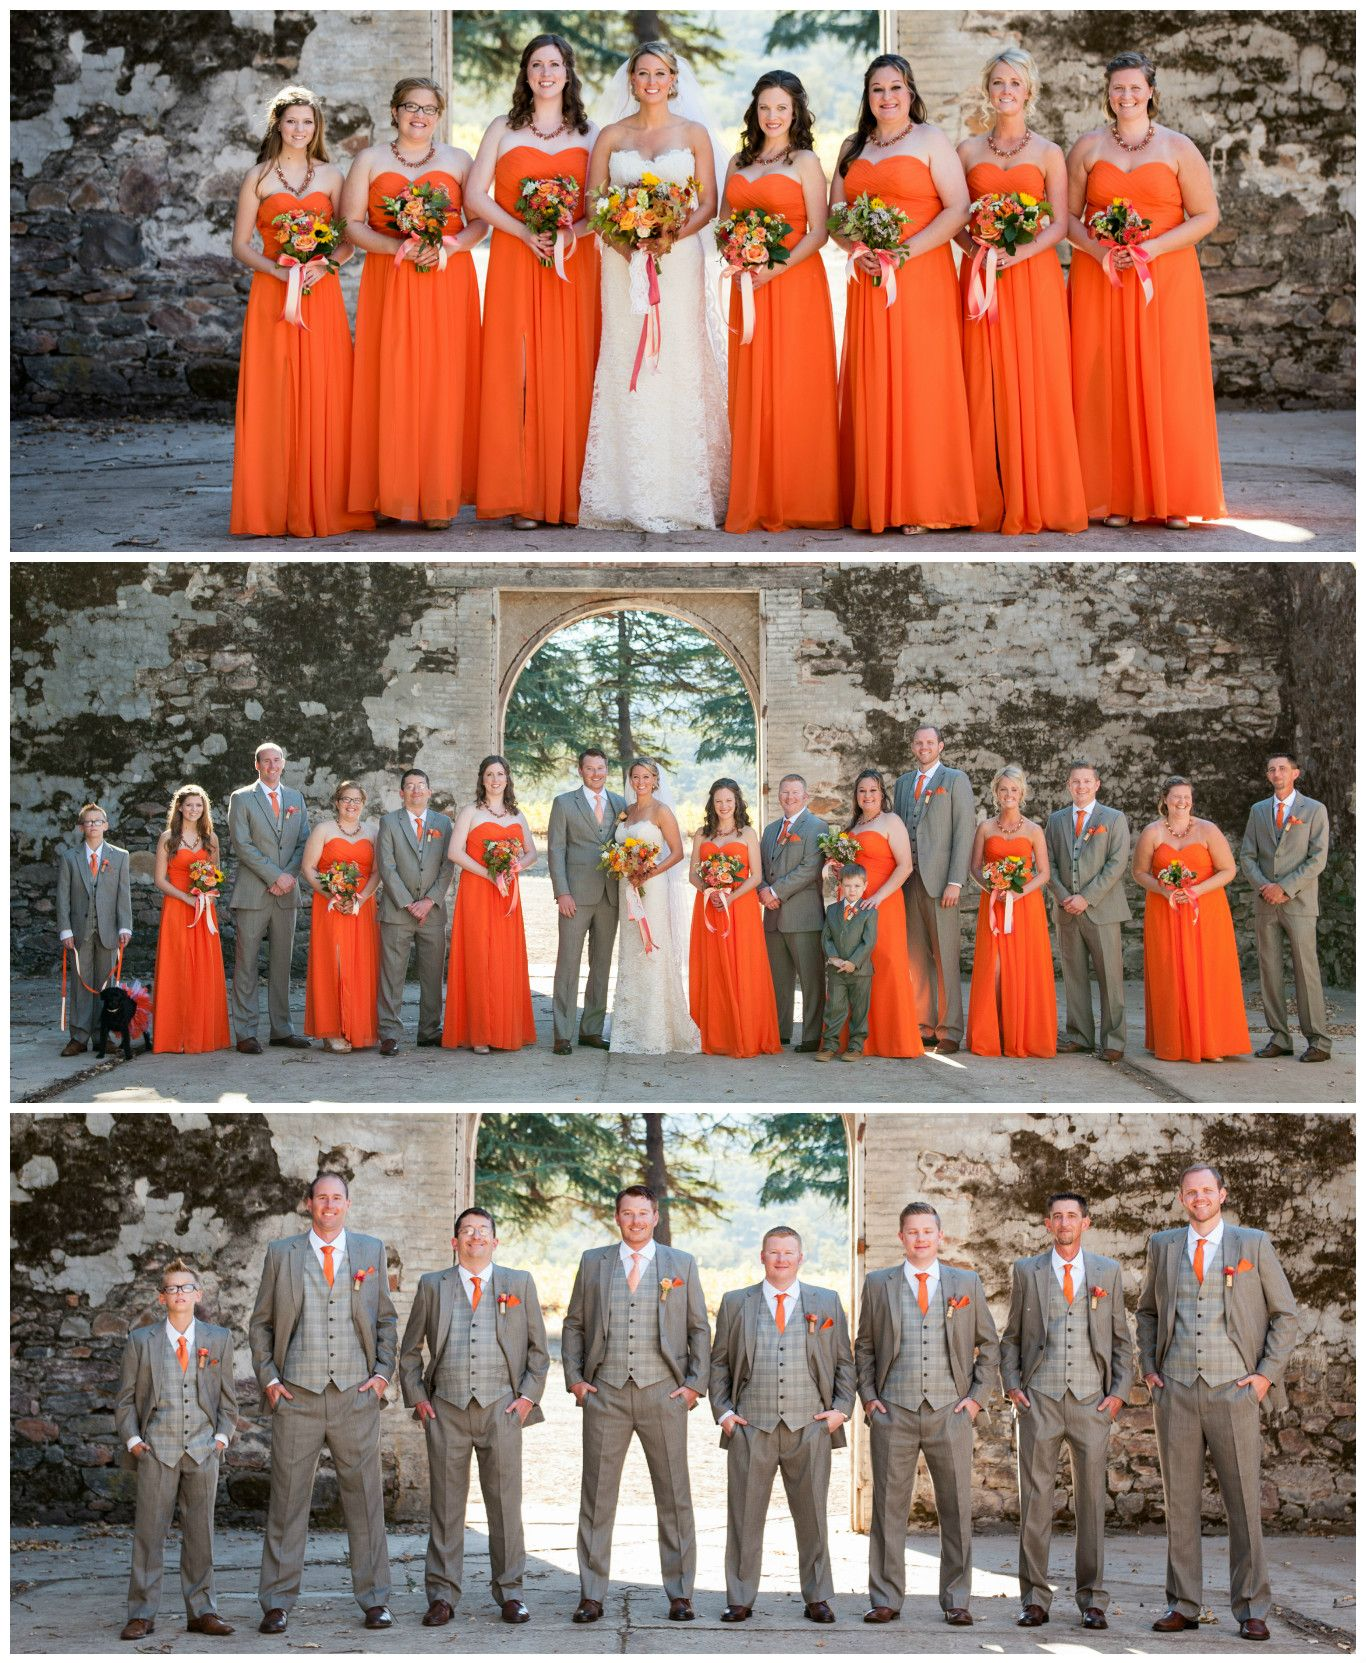 Orange bridesmaid dresses and gray groomsmen suits first look orange bridesmaid dresses only my groomsmen will be in blue jeans and a white button down shirts with orange suspenders and bow ties ombrellifo Image collections